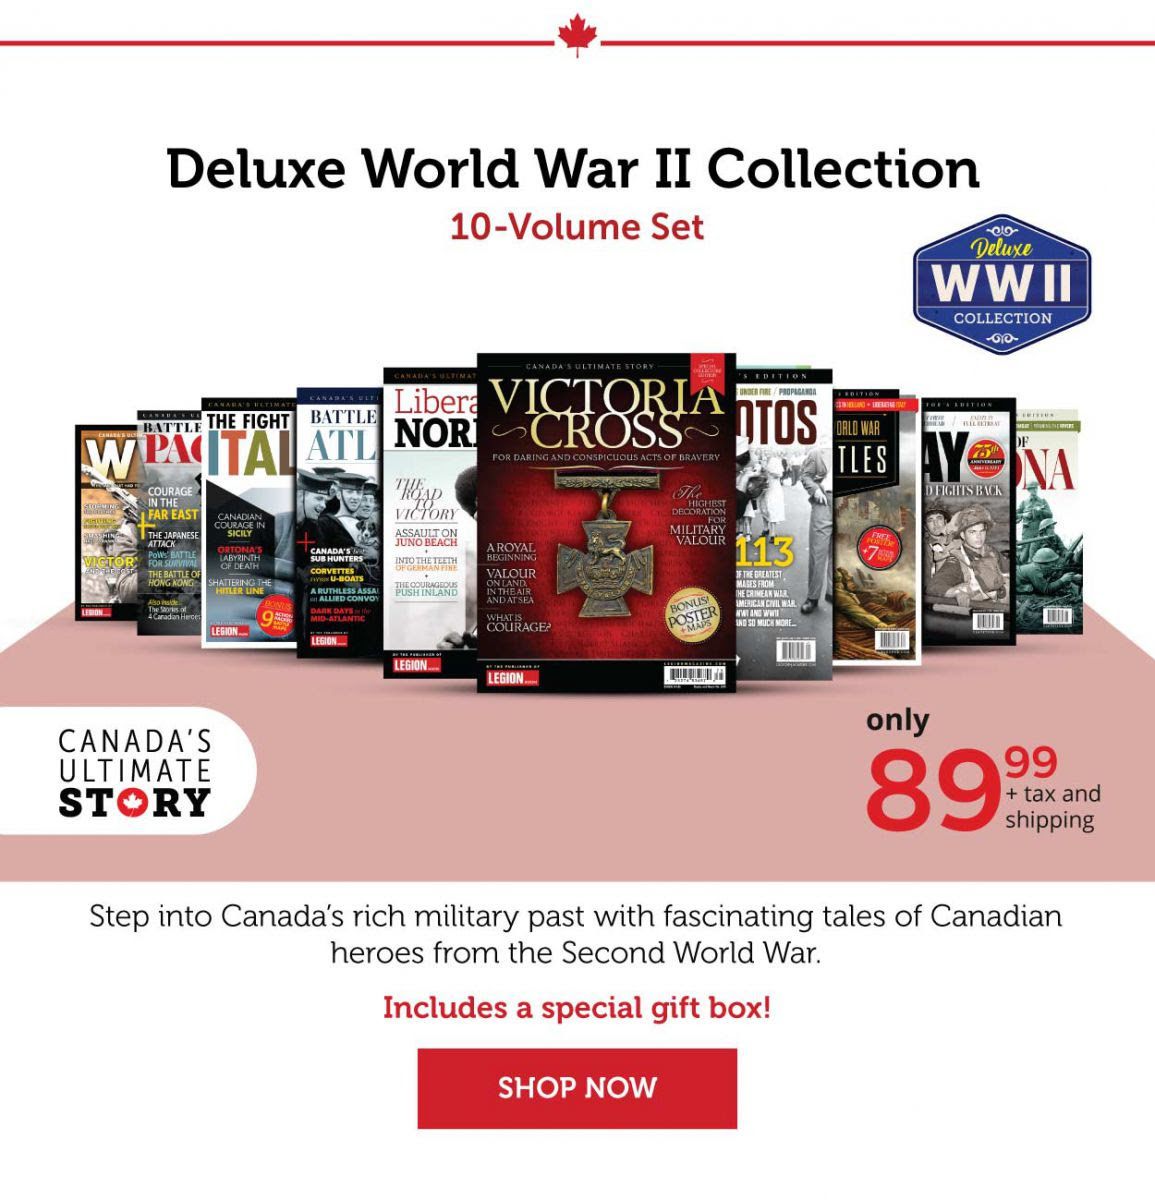 Deluxe World War II Collection